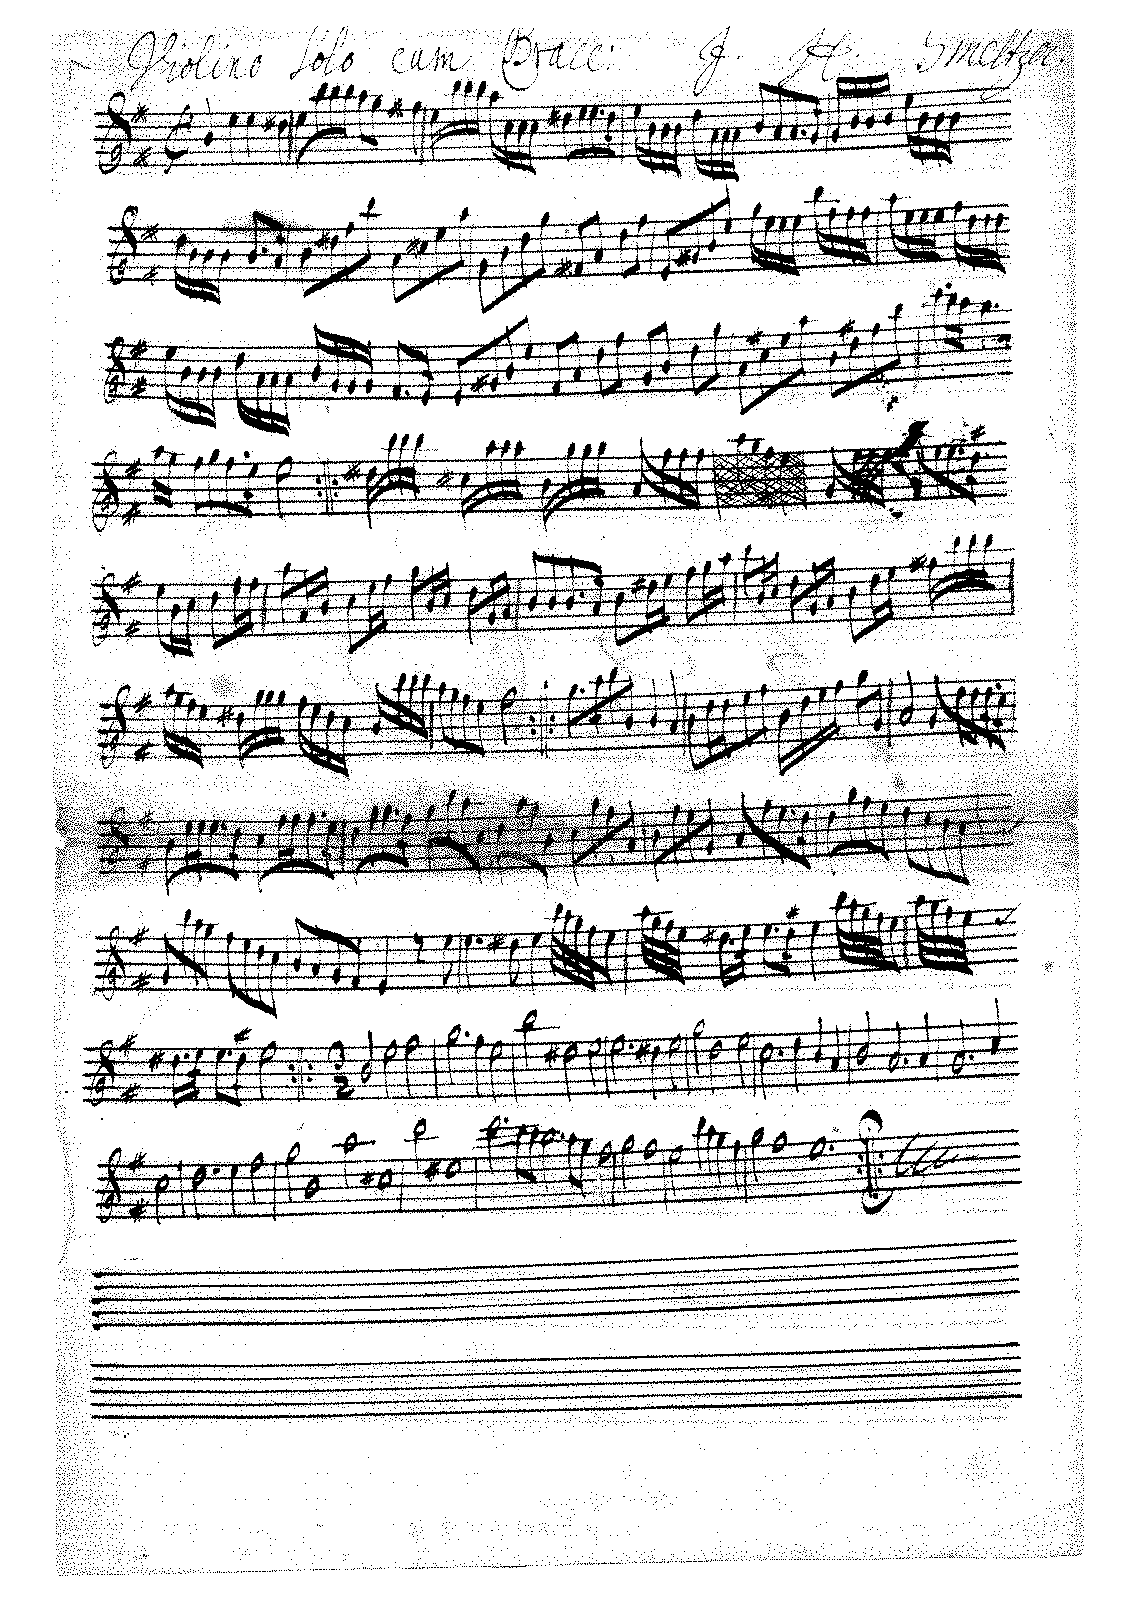 PMLP602792-Schmelzer - Sonata a 5 in e minor.pdf